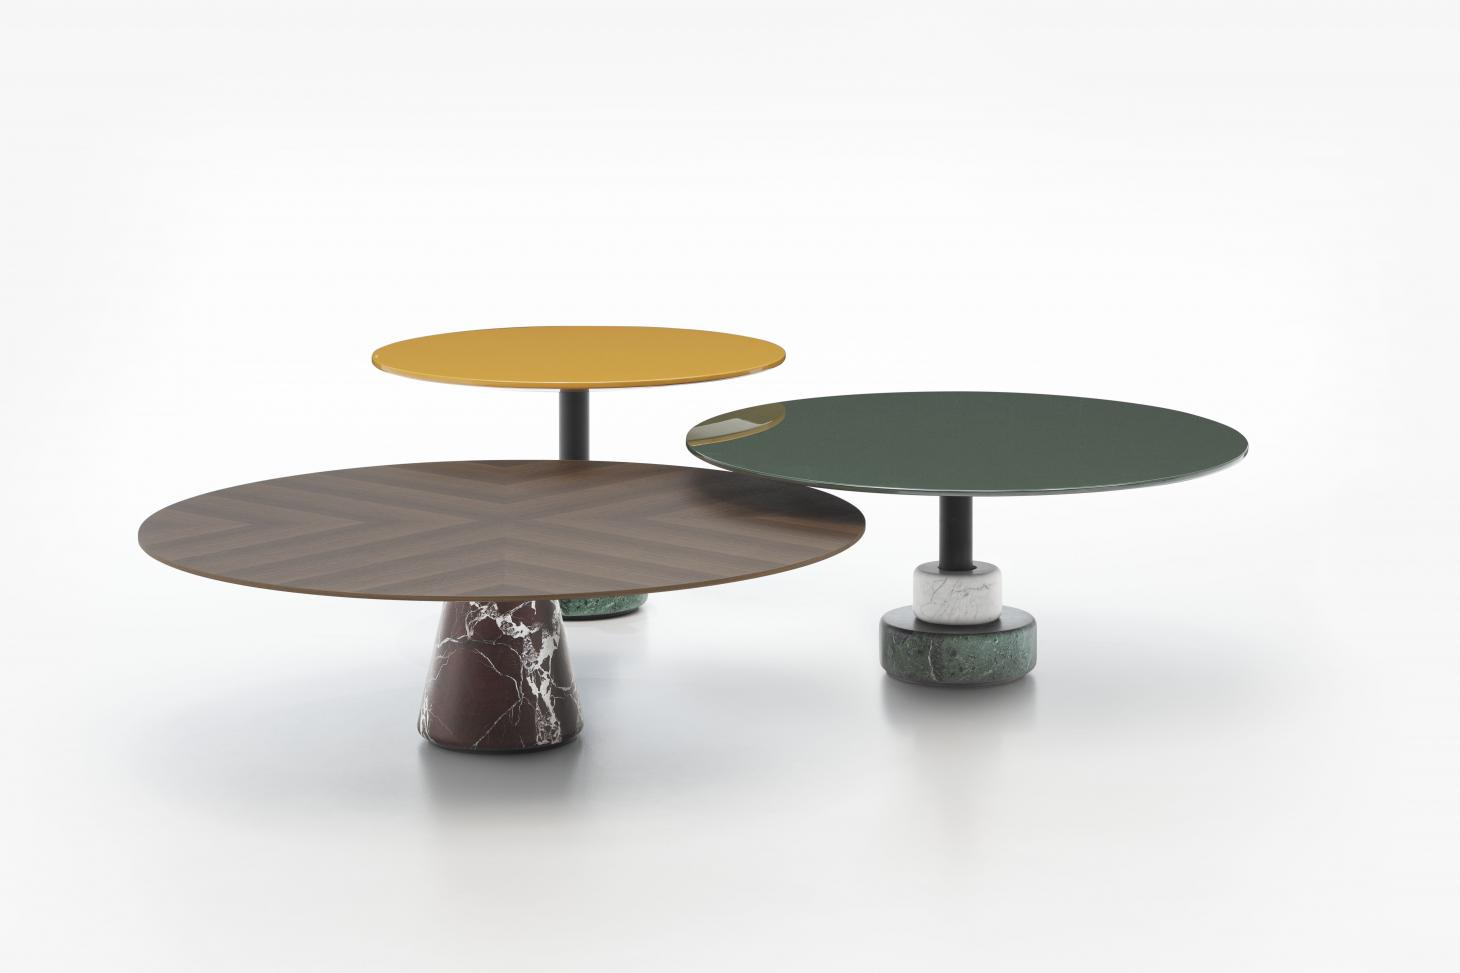 Tables by Giotto Stoppino for Acerbis